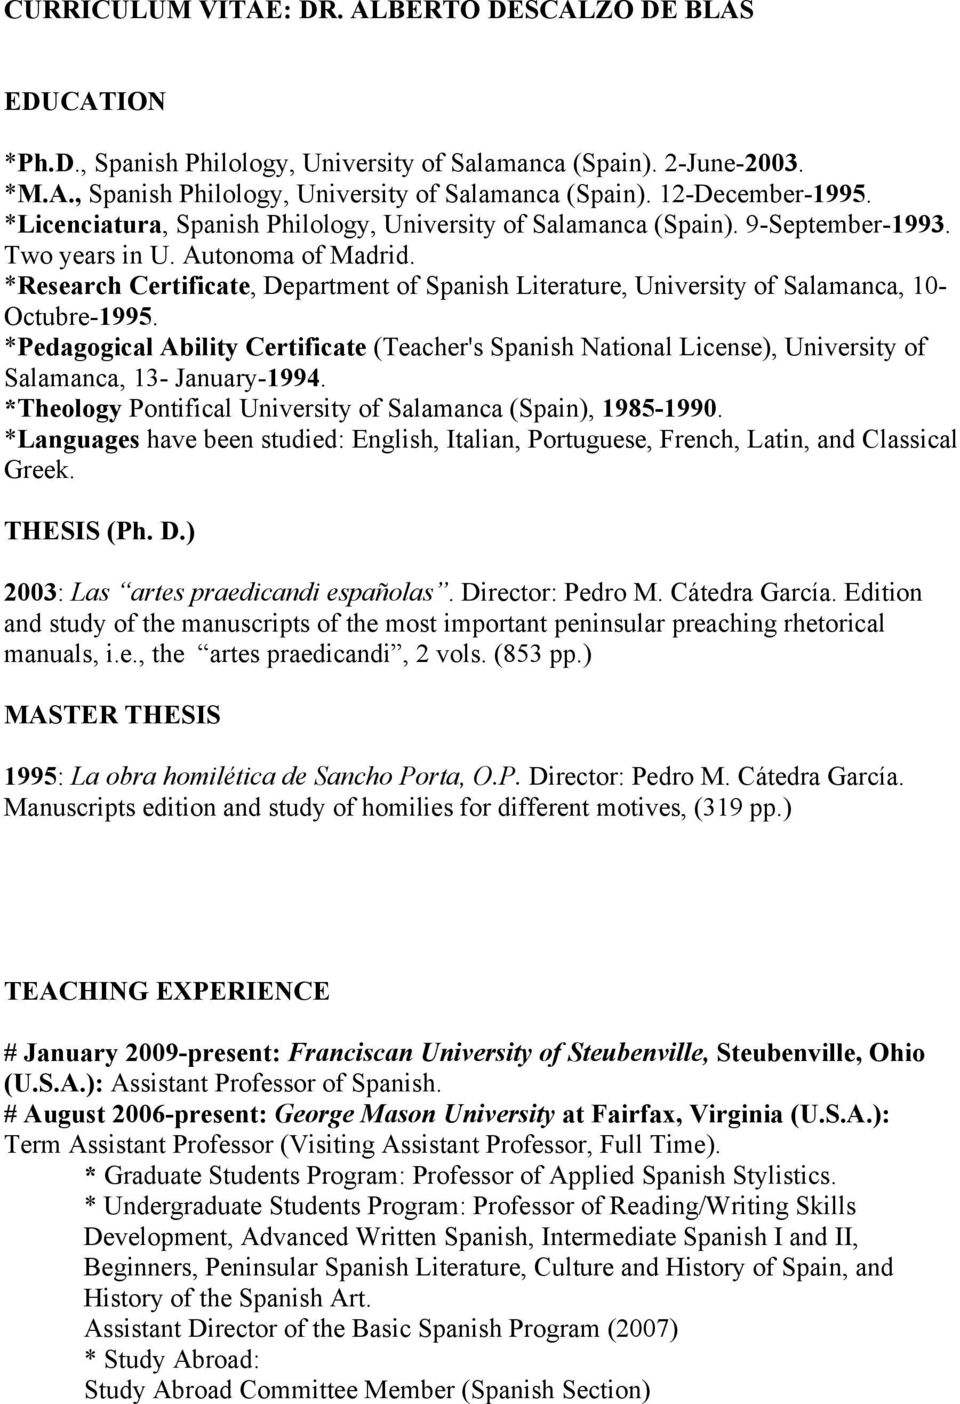 *Research Certificate, Department of Spanish Literature, University of Salamanca, 10- Octubre-1995.